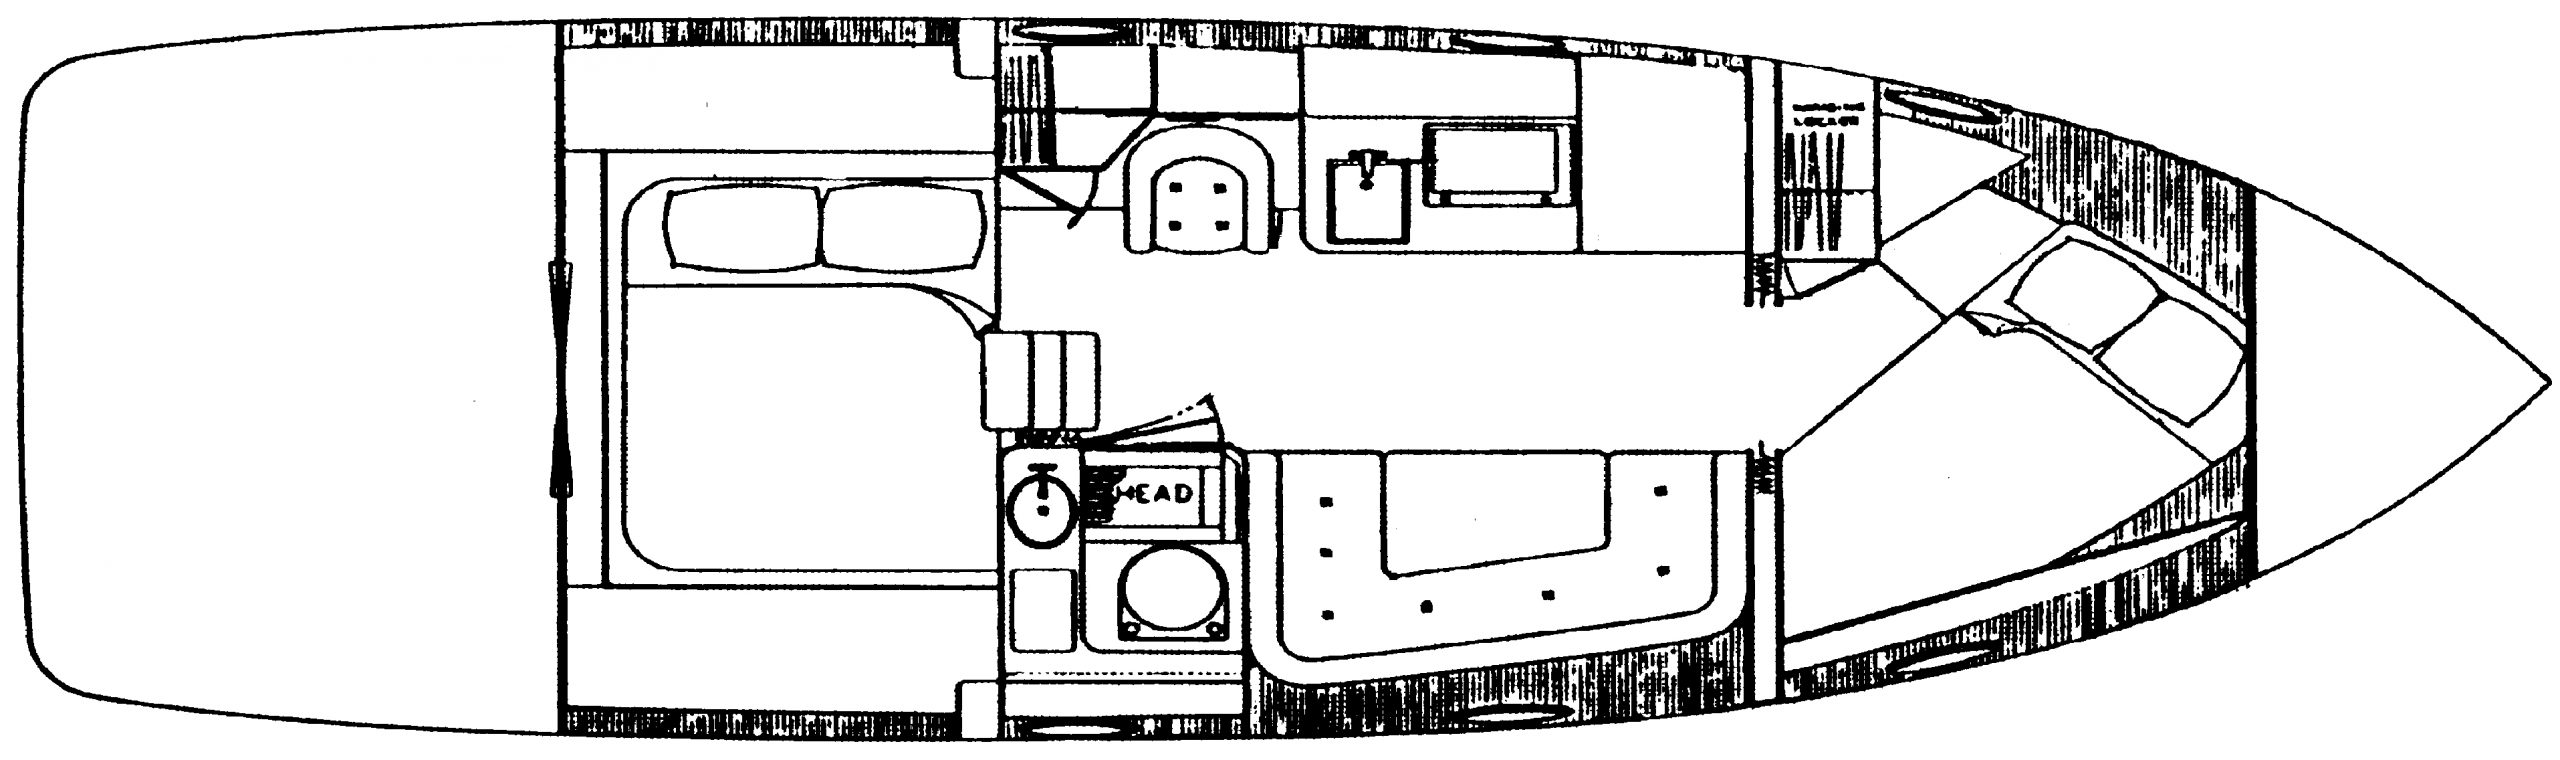 320 Commodore Floor Plan 1